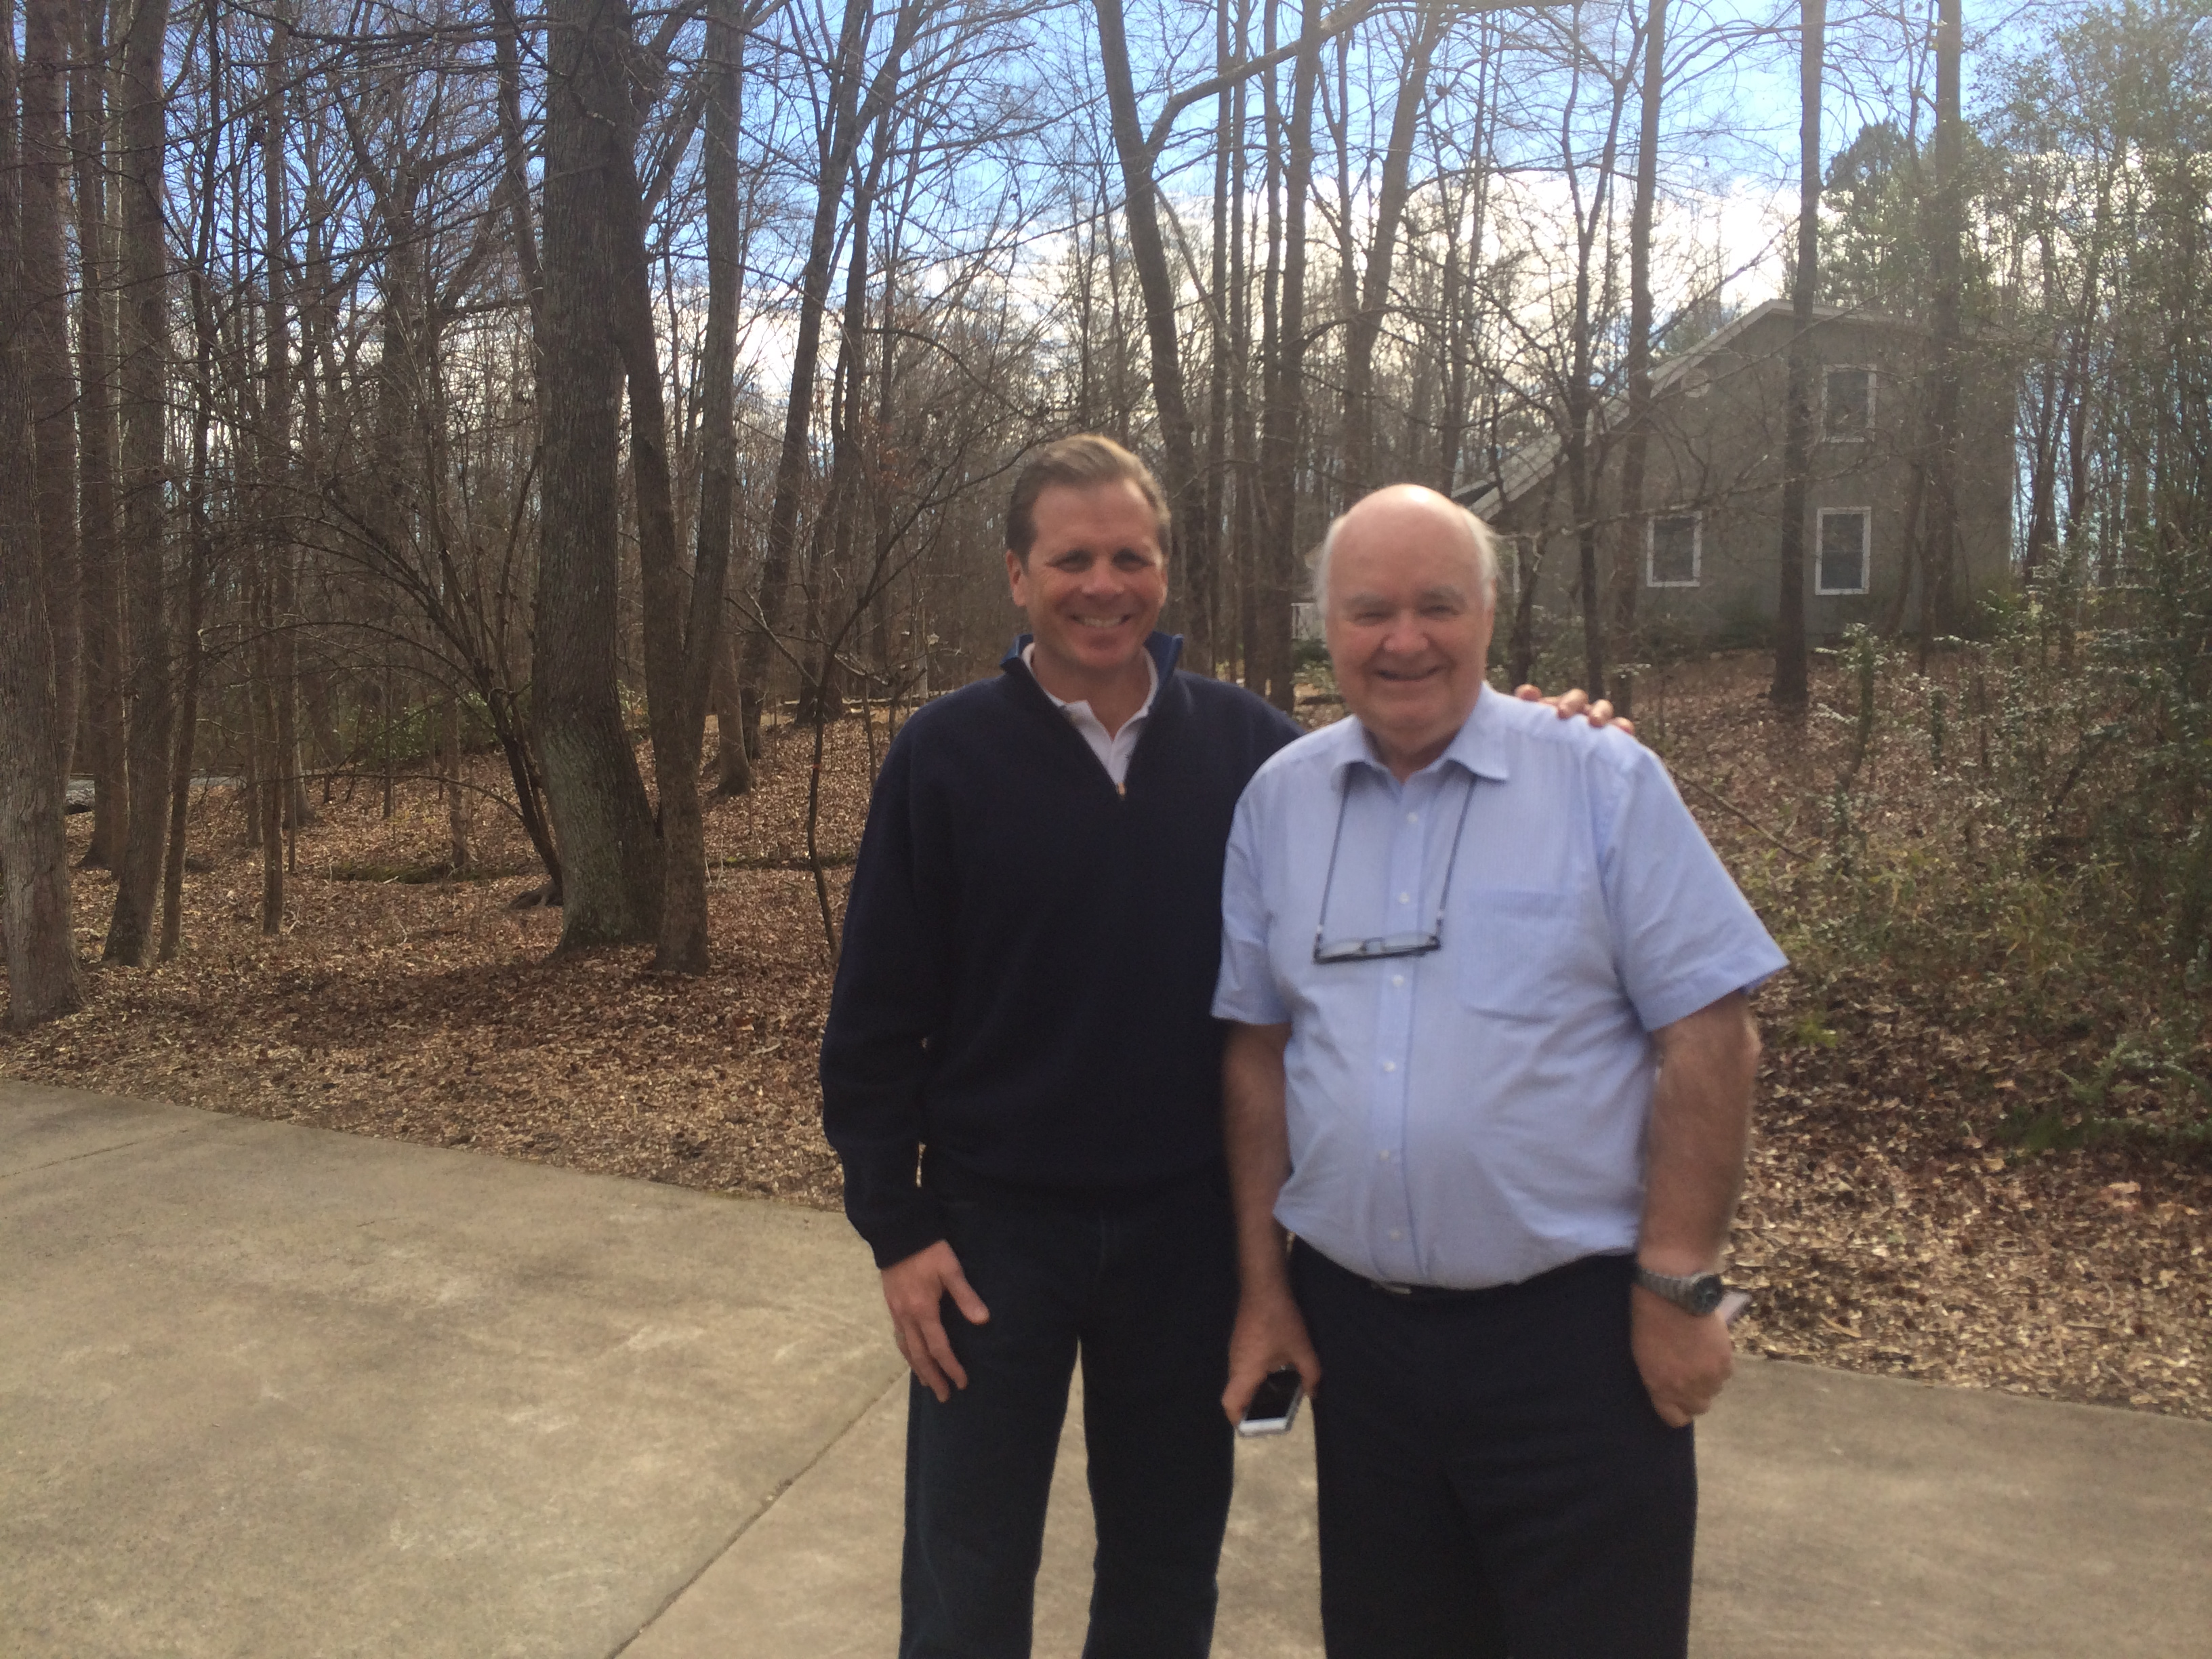 Frank Turek with the world's most credentialed and likable apologist, Dr. John Lennox.